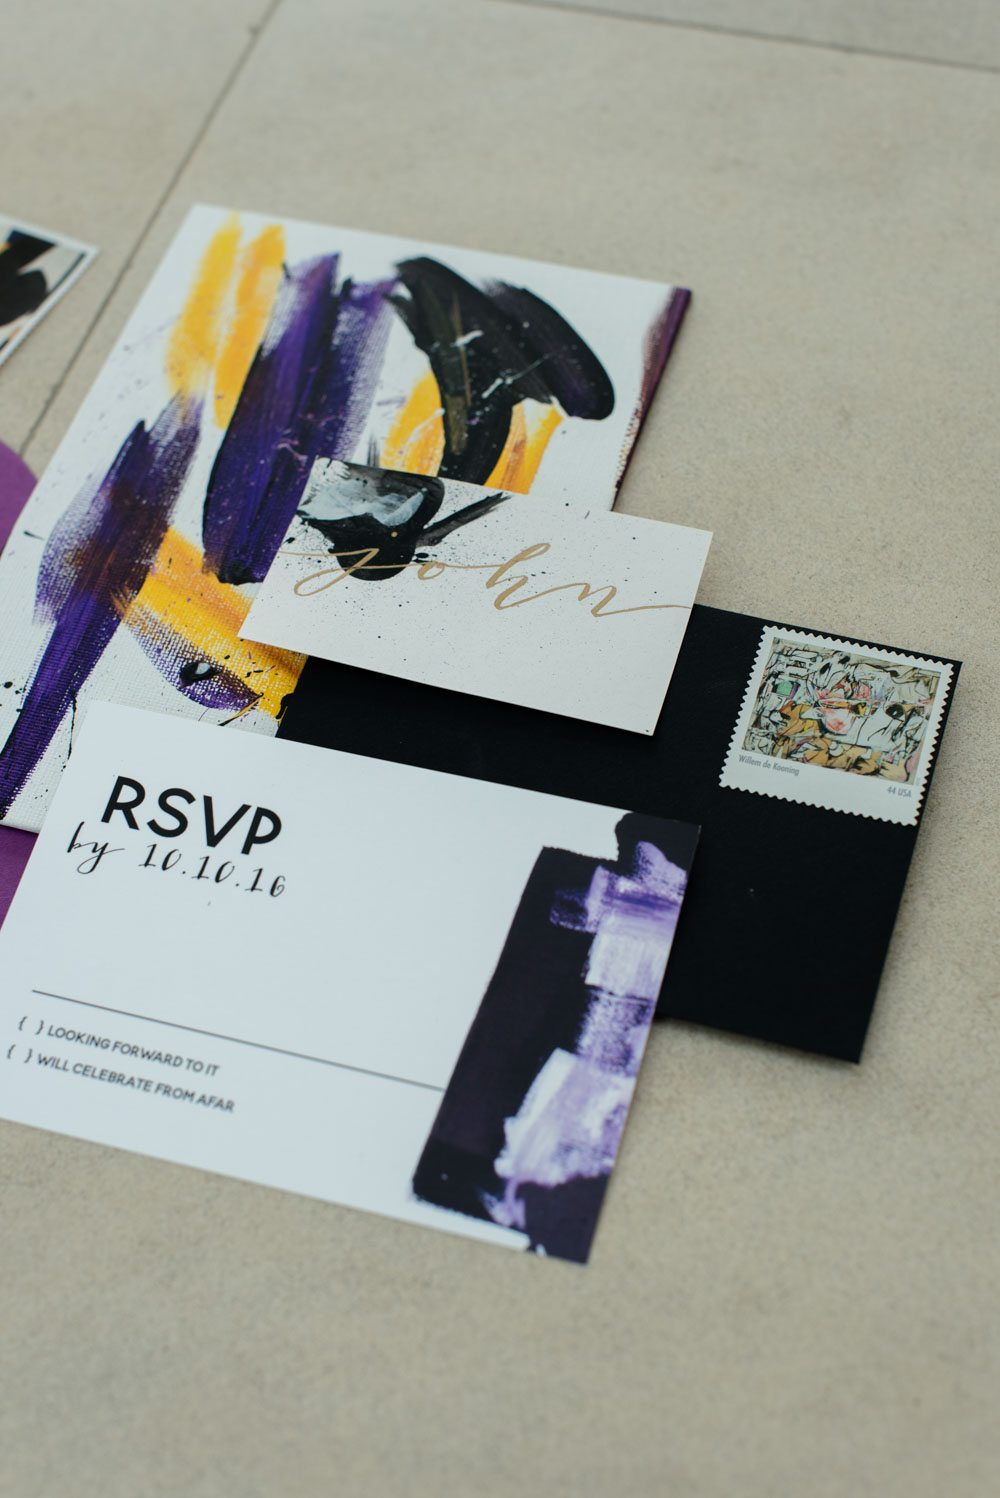 paint-invitations-art-caroline-evan-jepson-center-49